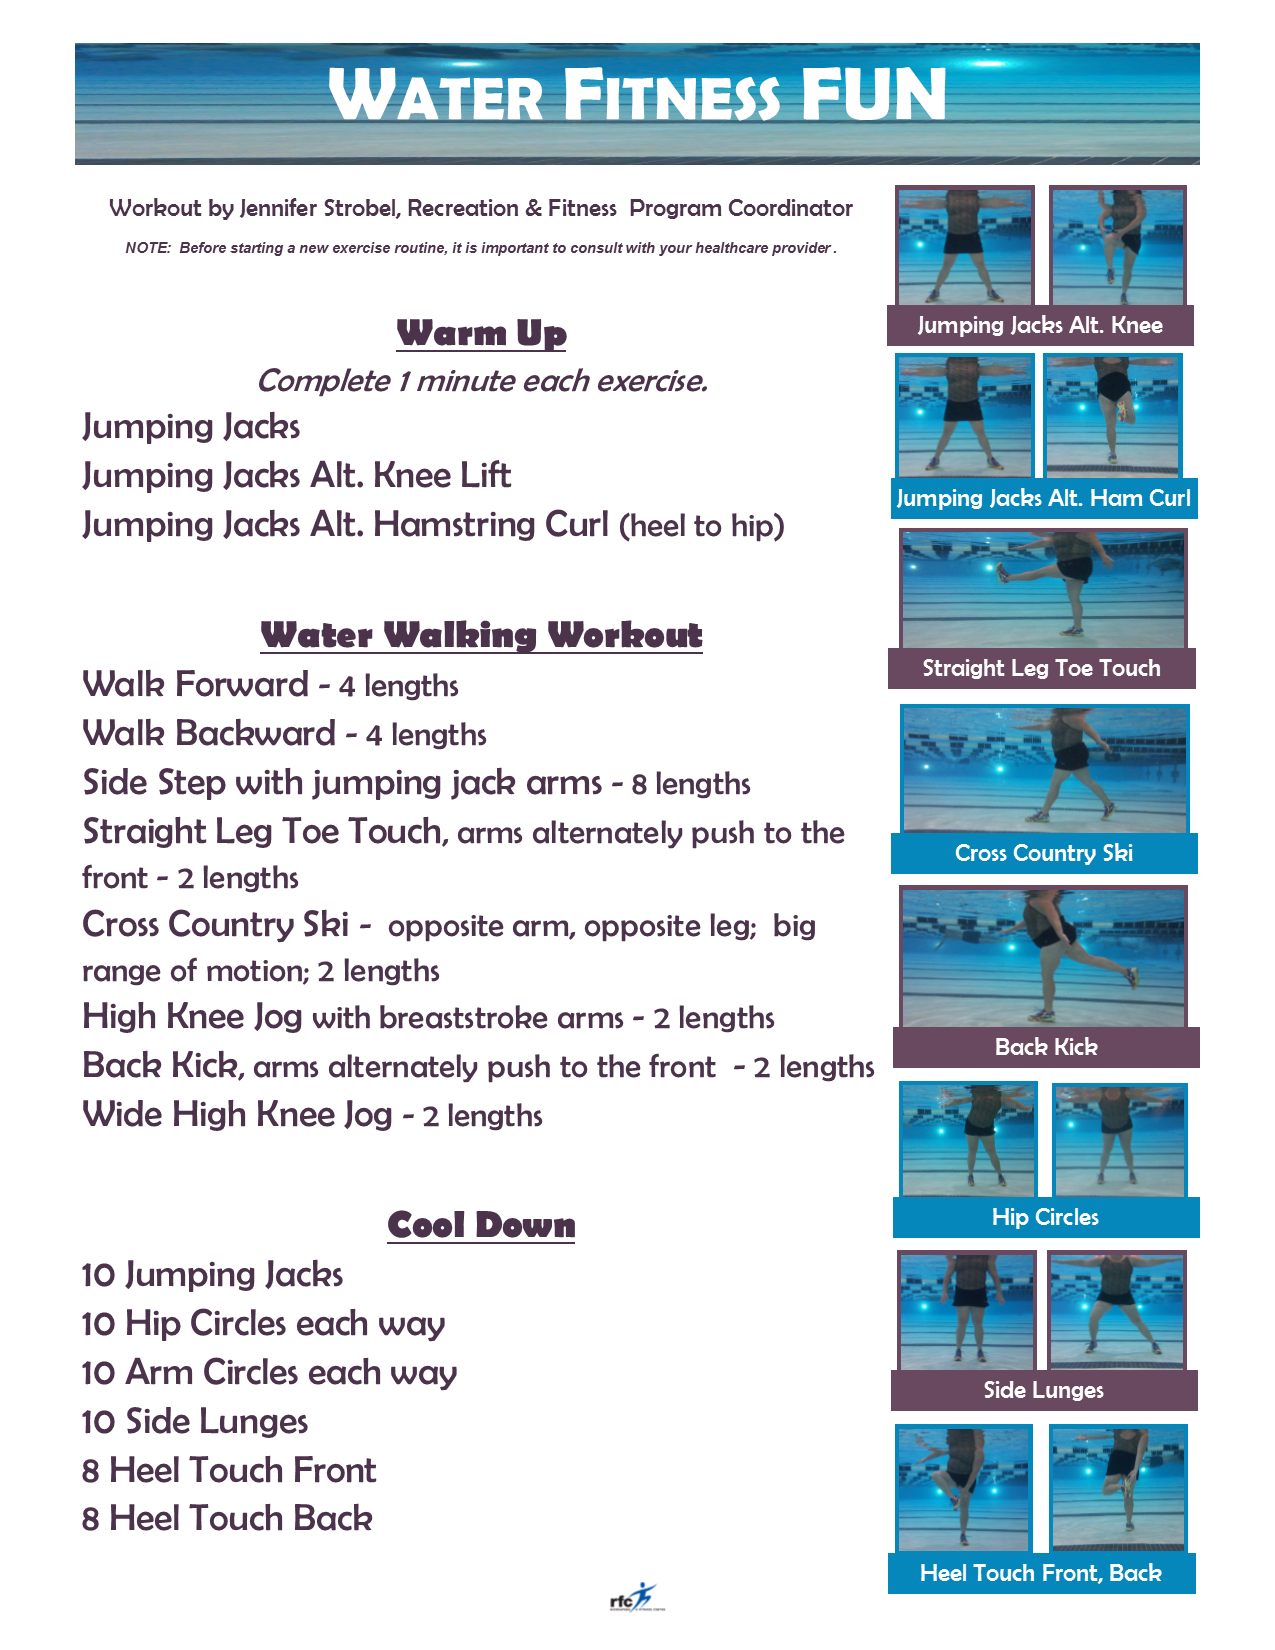 Water Fitness Fun By Jennifer Strobel